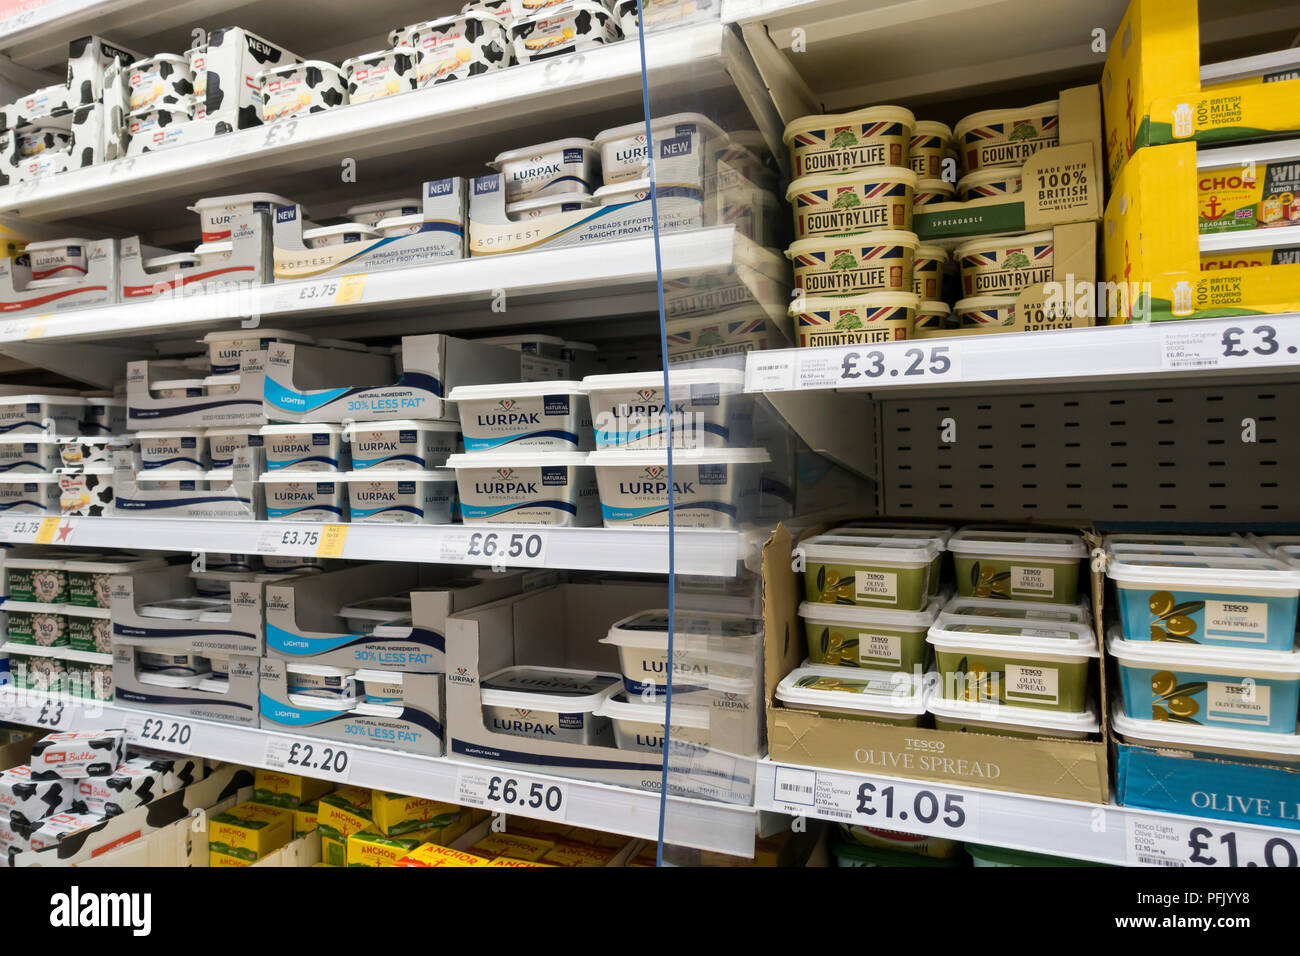 Butter and spreads for sale on supermarket shelves, England, UK - Stock Image